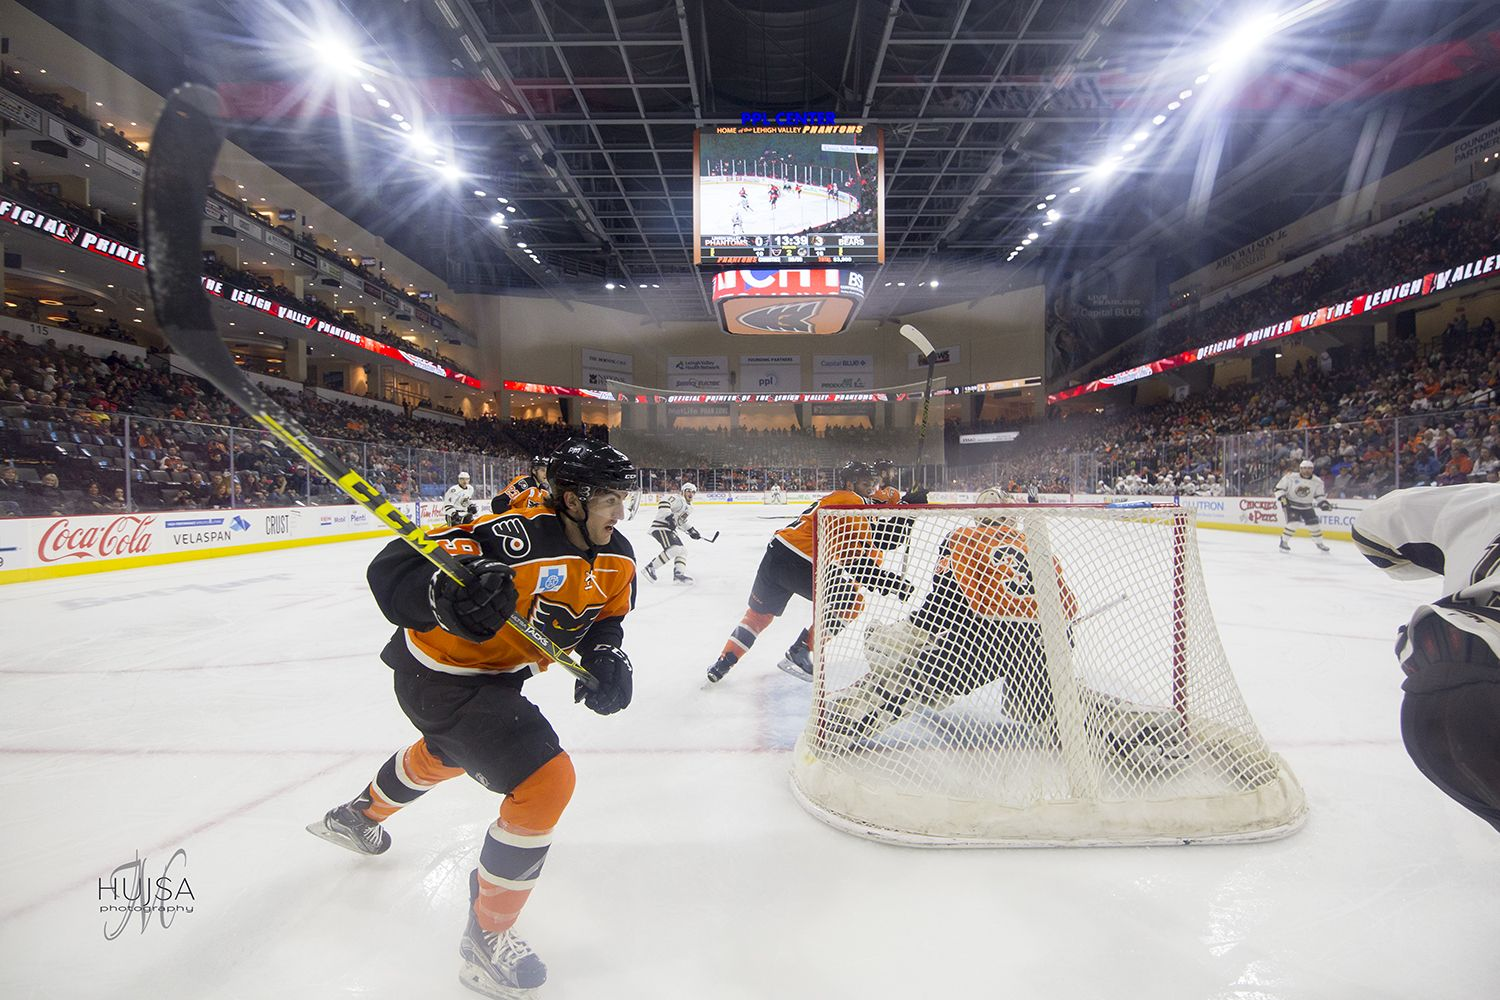 Photo Recap of Wednesday Night's Hershey Bears vs the Phantoms Game